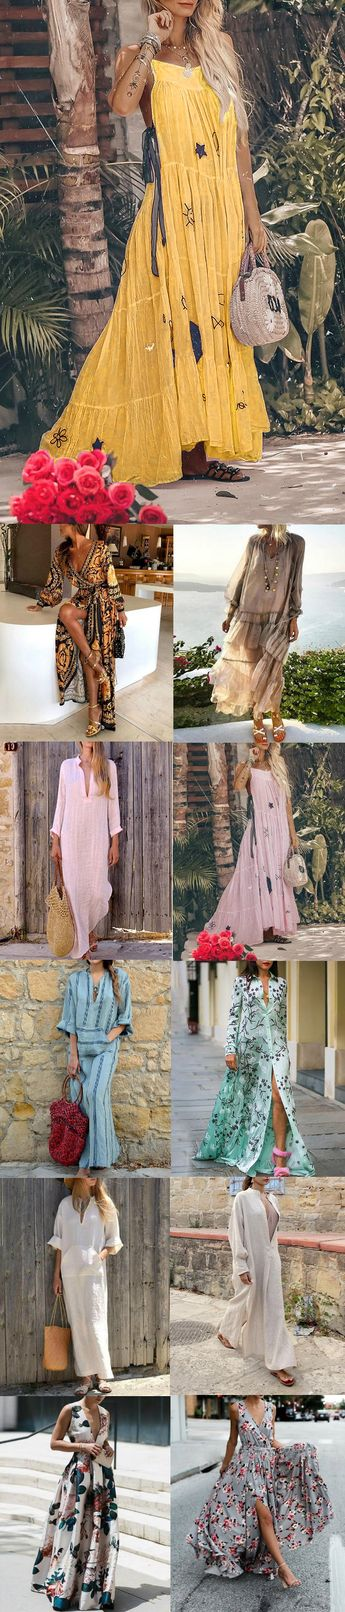 Shop Now>> 100+ Styles New Spring Summer Dresses for You.Buy More Save More!